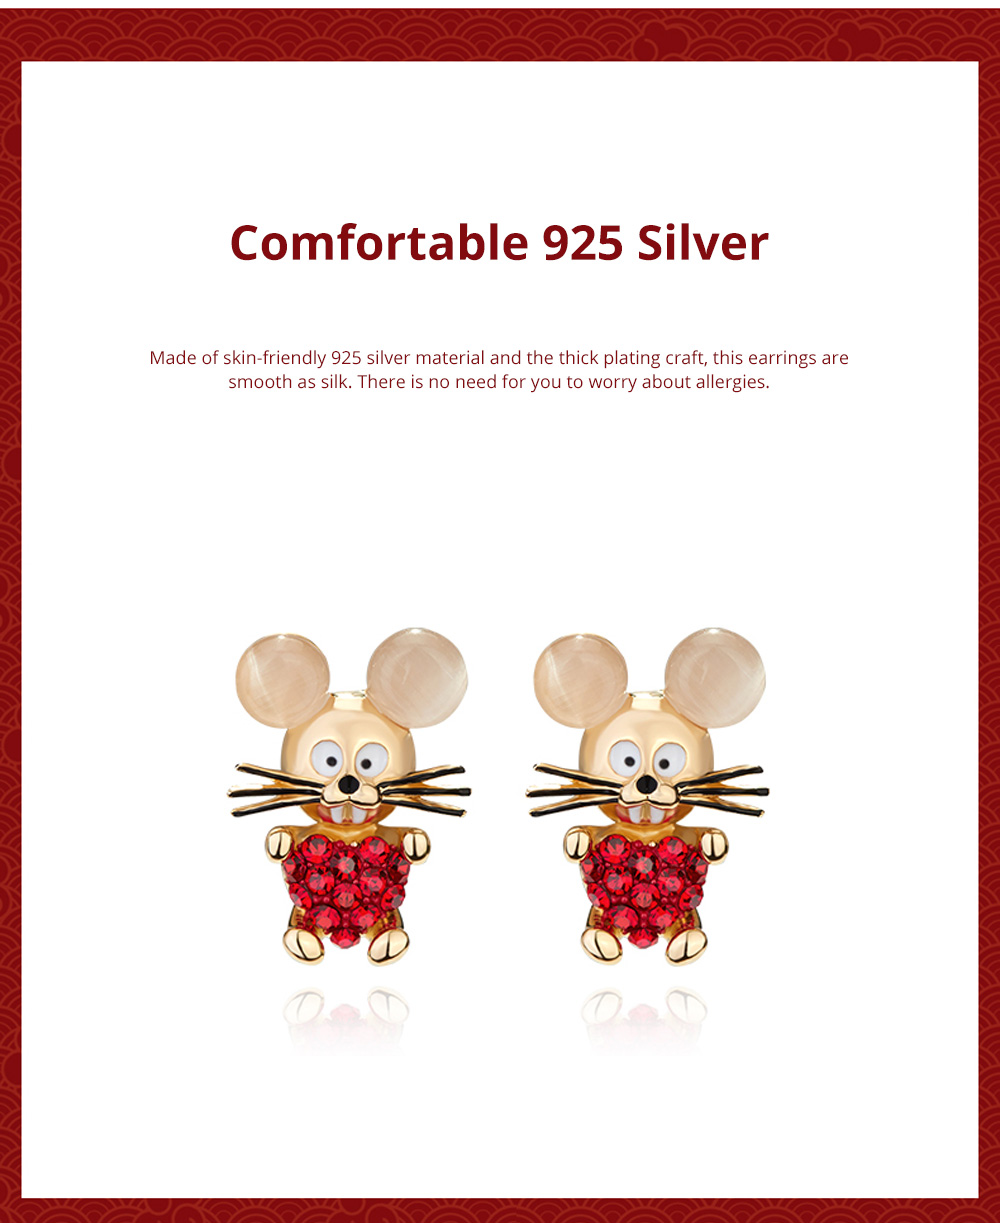 Delicate 925 Silver Earrings  Mouse Zodiac Year Birth Eardrop with Propitious implied Meaning Mouse Earrings Studs 4